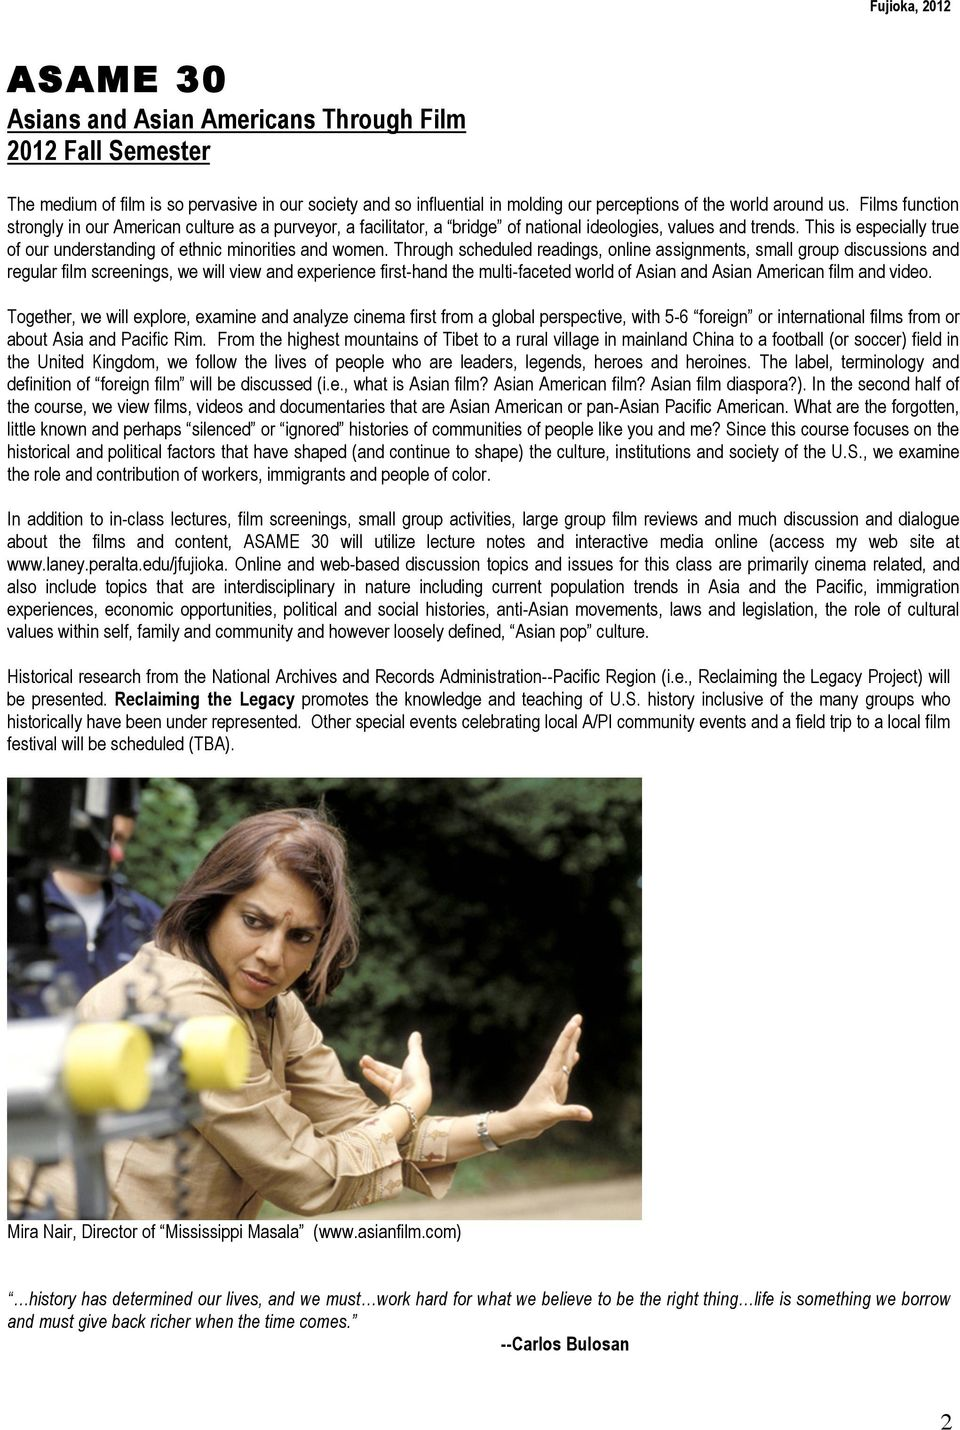 Asame 30 asians and asian americans through film 2012 fall semester this is especially true of our understanding of ethnic minorities and women fandeluxe Gallery